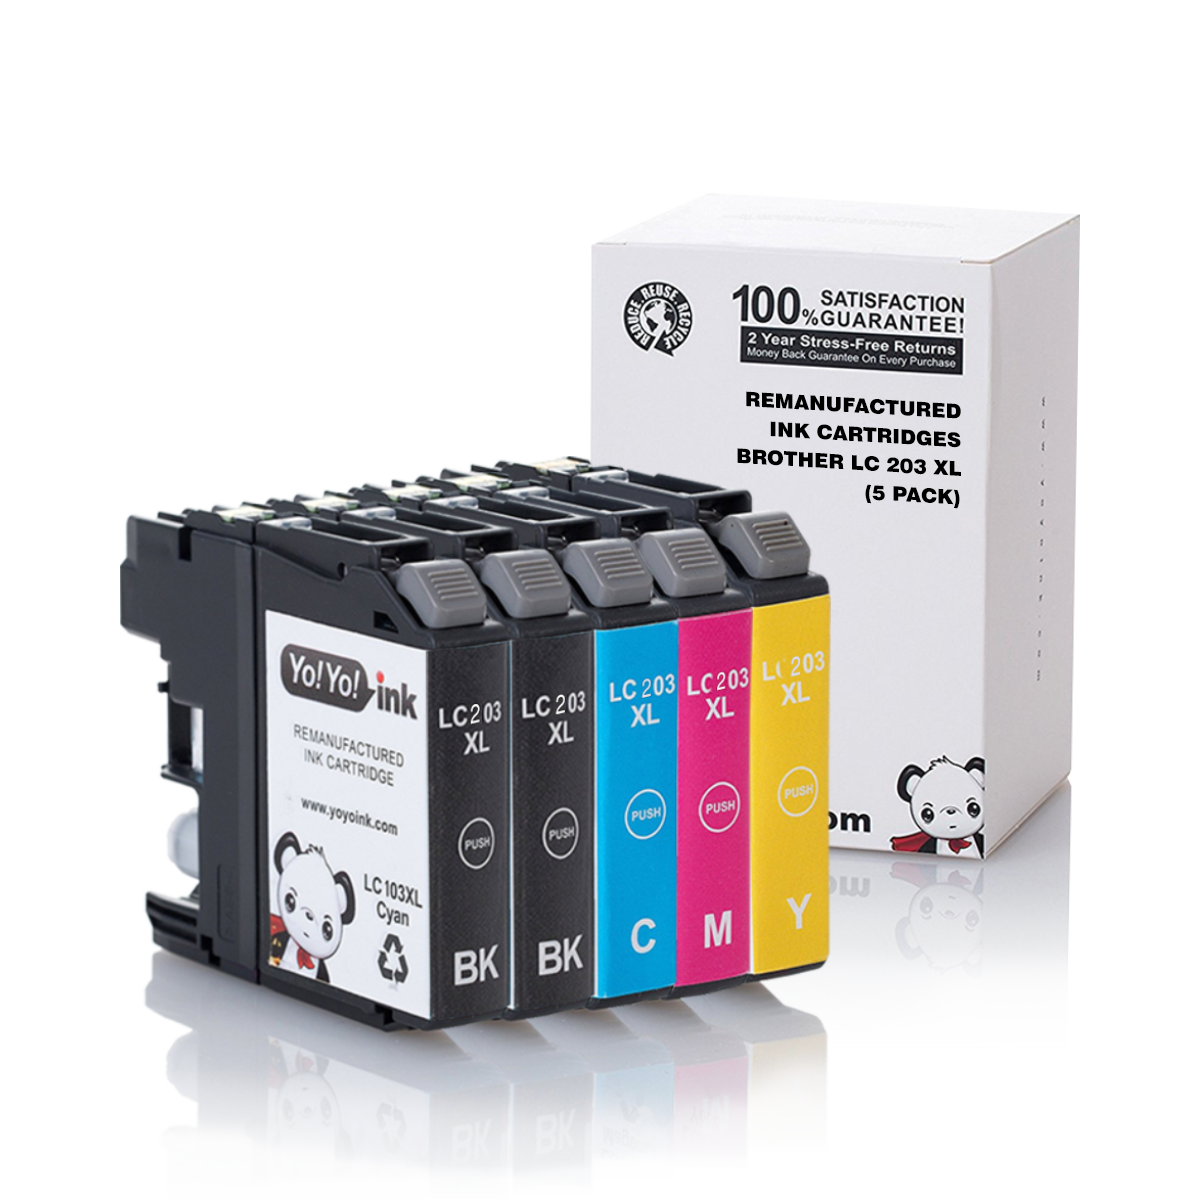 Brother LC203 Printer Ink Cartridges